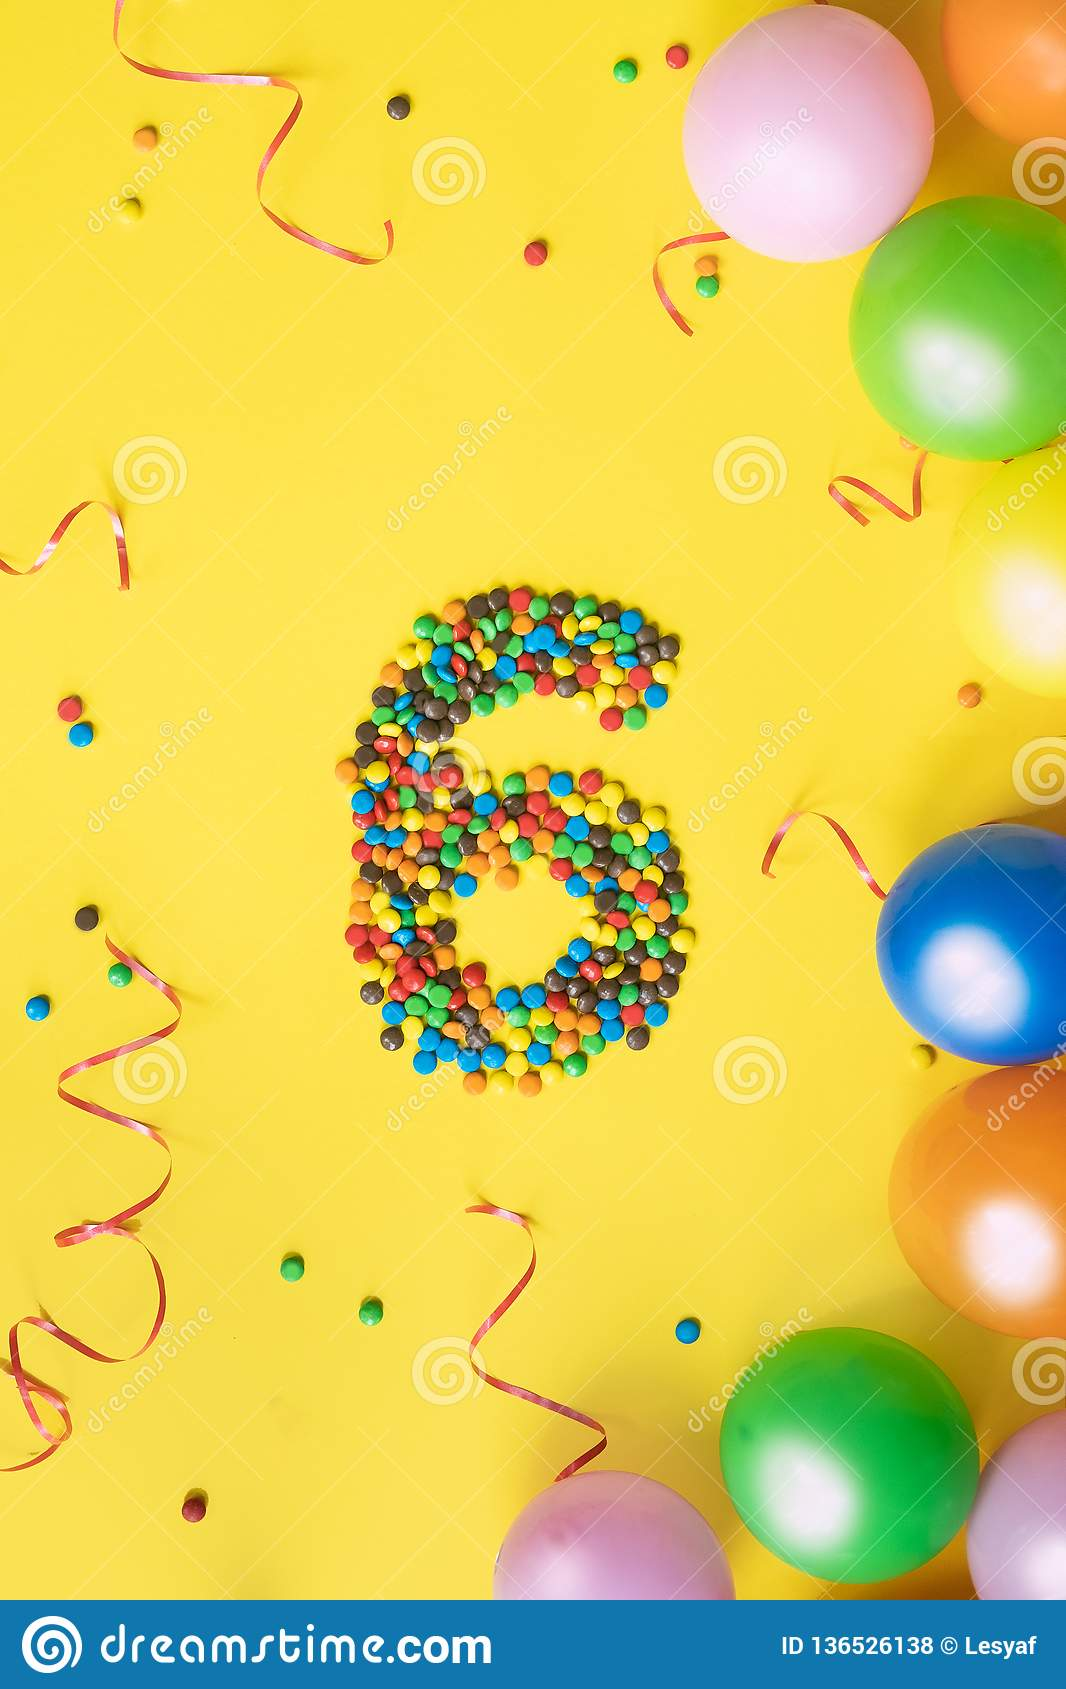 Candies Number 6 With Colorful Balloons On Yellow Background Concept For Birthdays